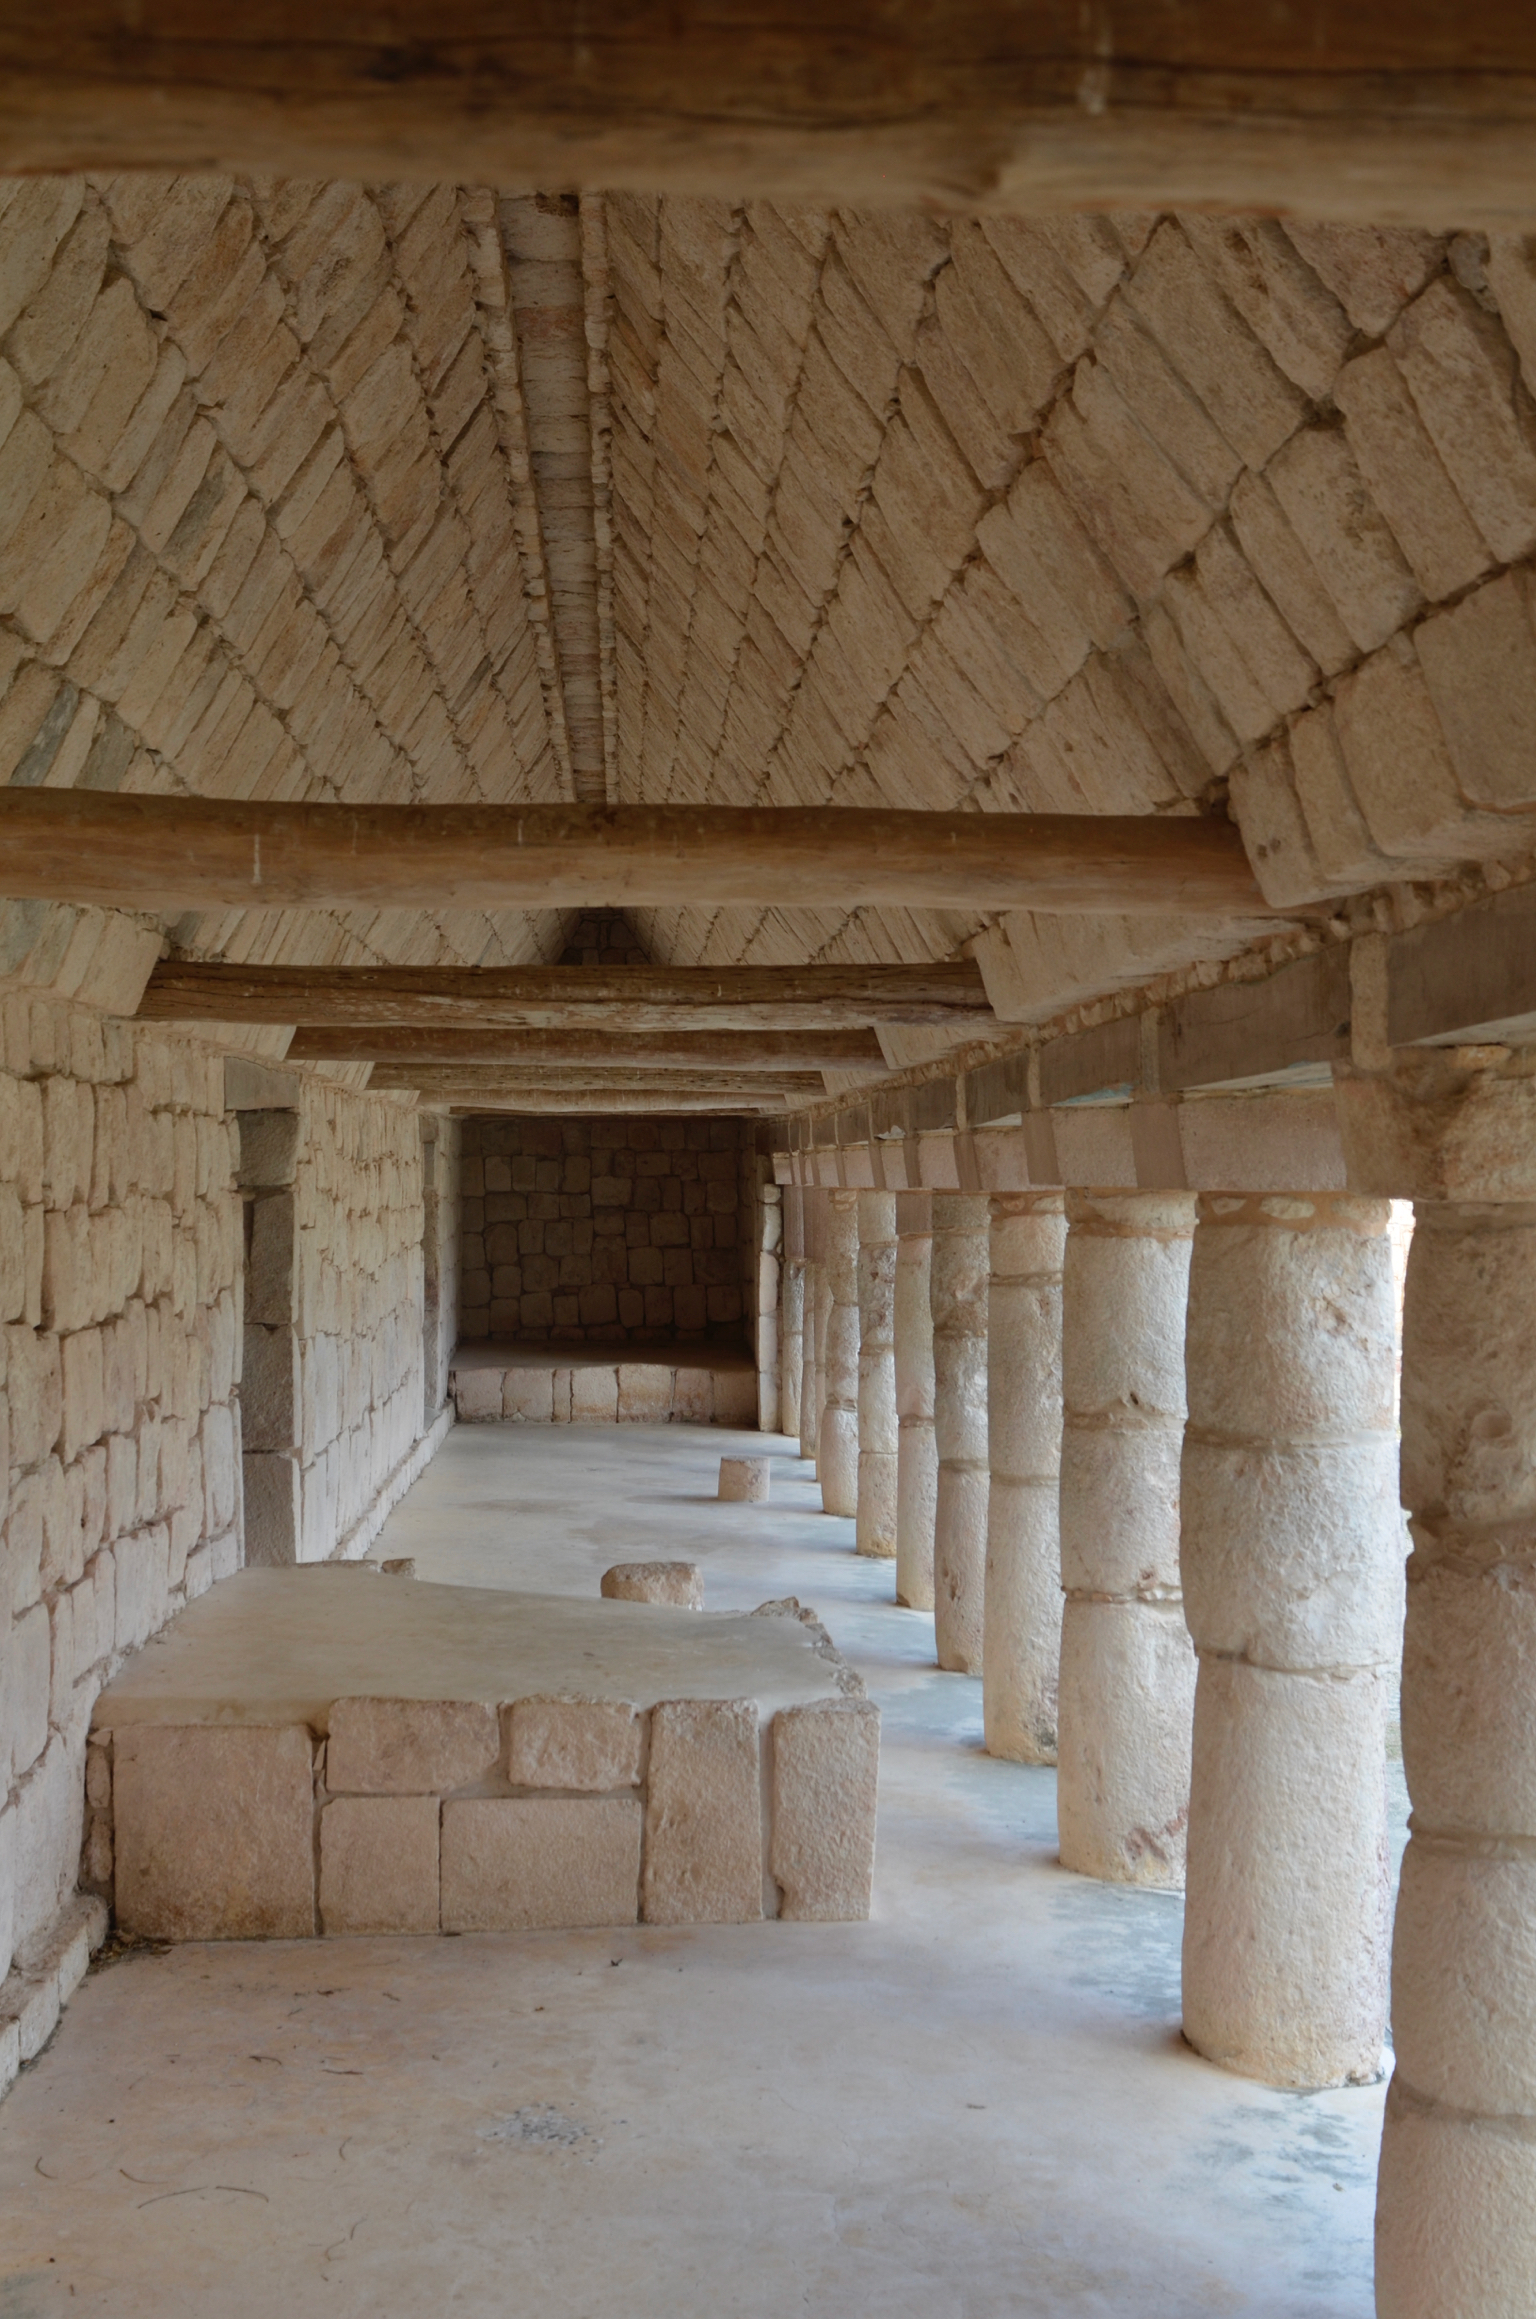 The pillars at Uxmal resemble Doric columns, but without the fluting along the sides.